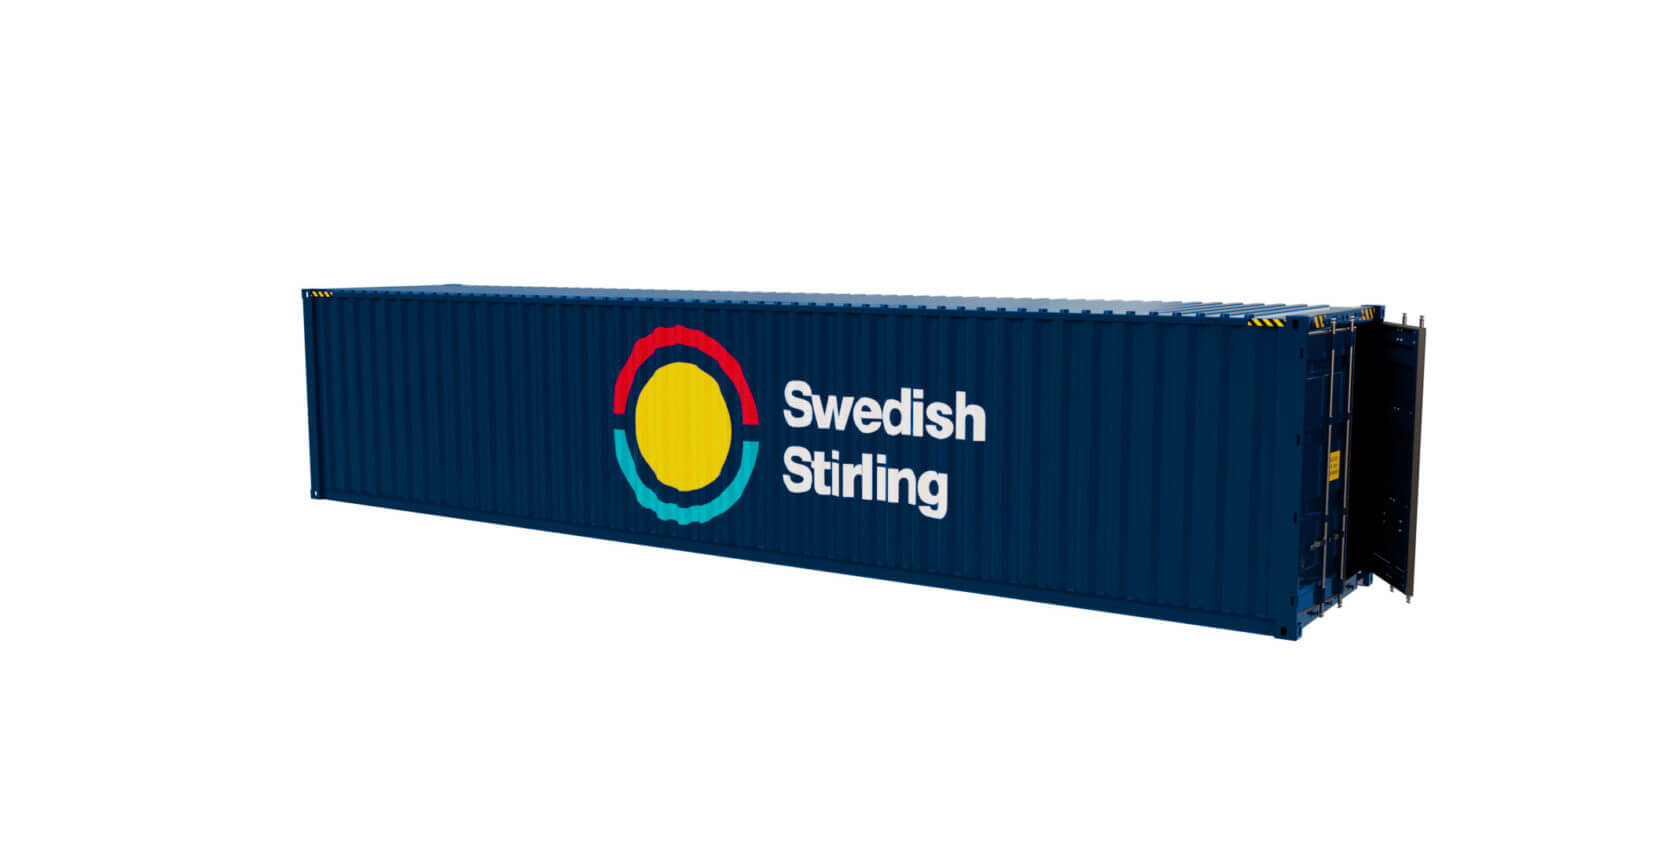 SwedishSterling_container.jpg